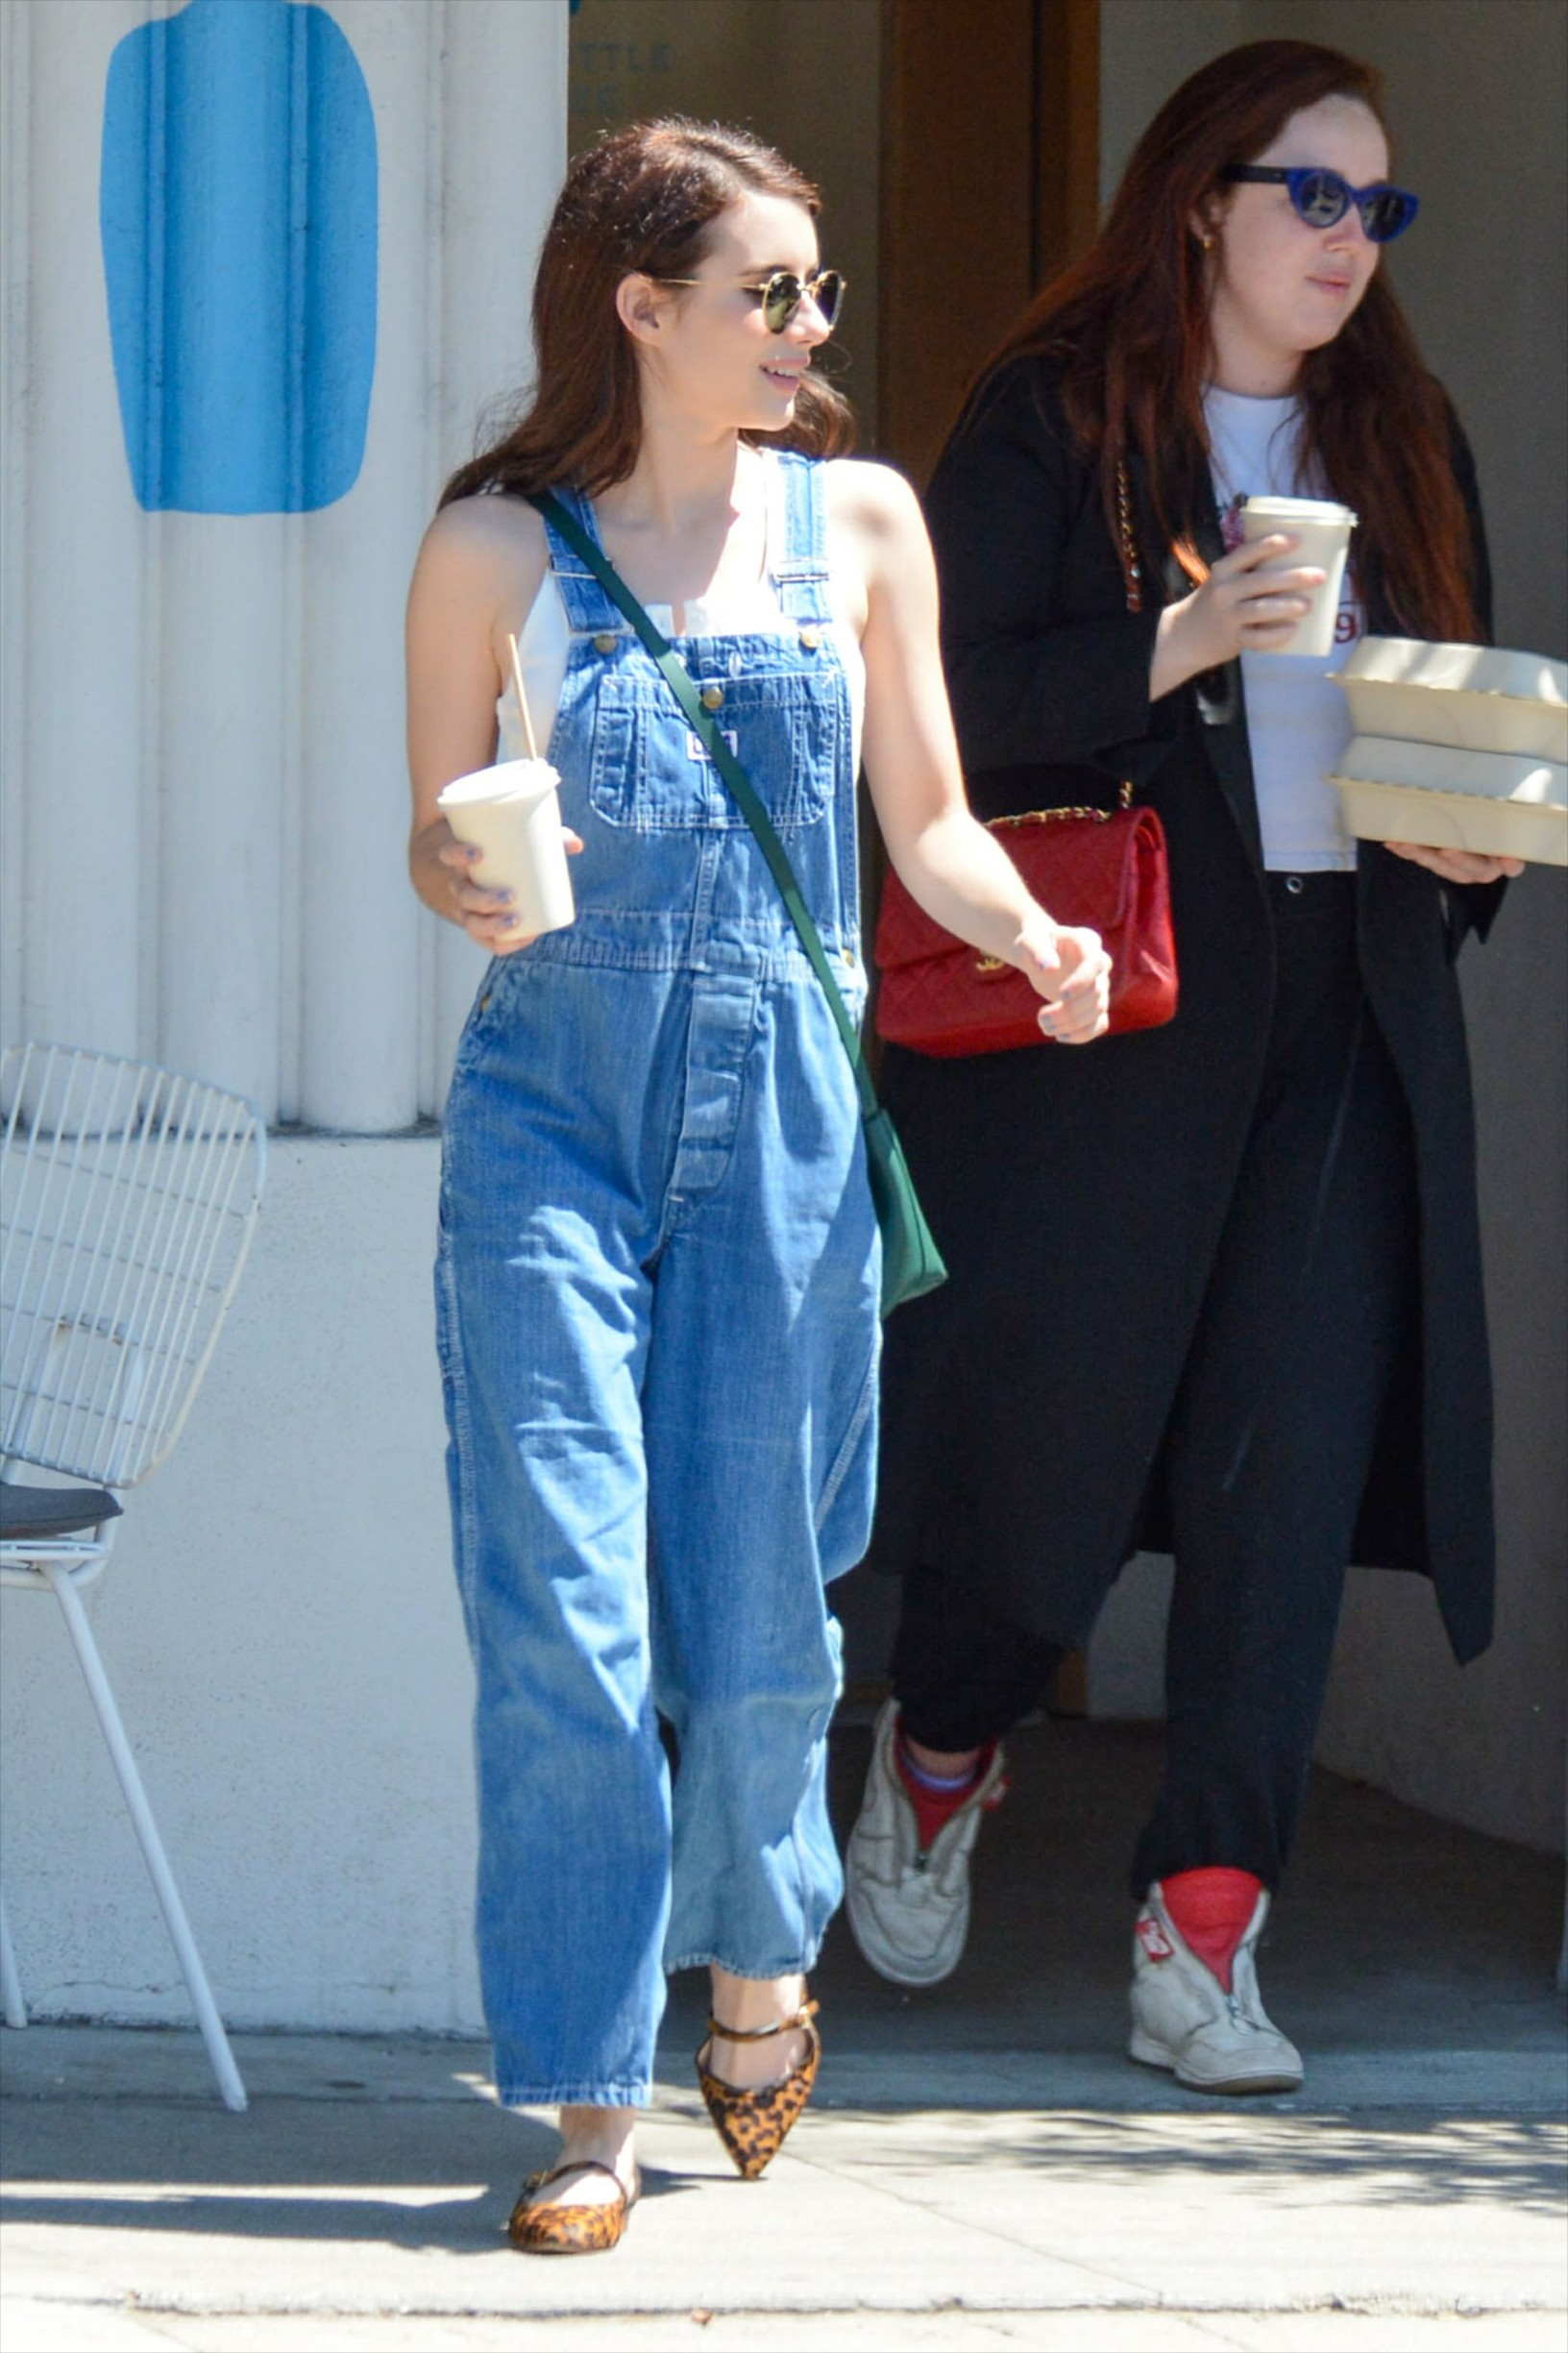 -Los Angeles, CA - 20190831 -   Emma Roberts looks adorable in denim dungarees as she is seen on a coffee run.   -PICTURED: Emma Roberts -, Image: 468411970, License: Rights-managed, Restrictions: , Model Release: no, Credit line: Profimedia, INSTAR Images